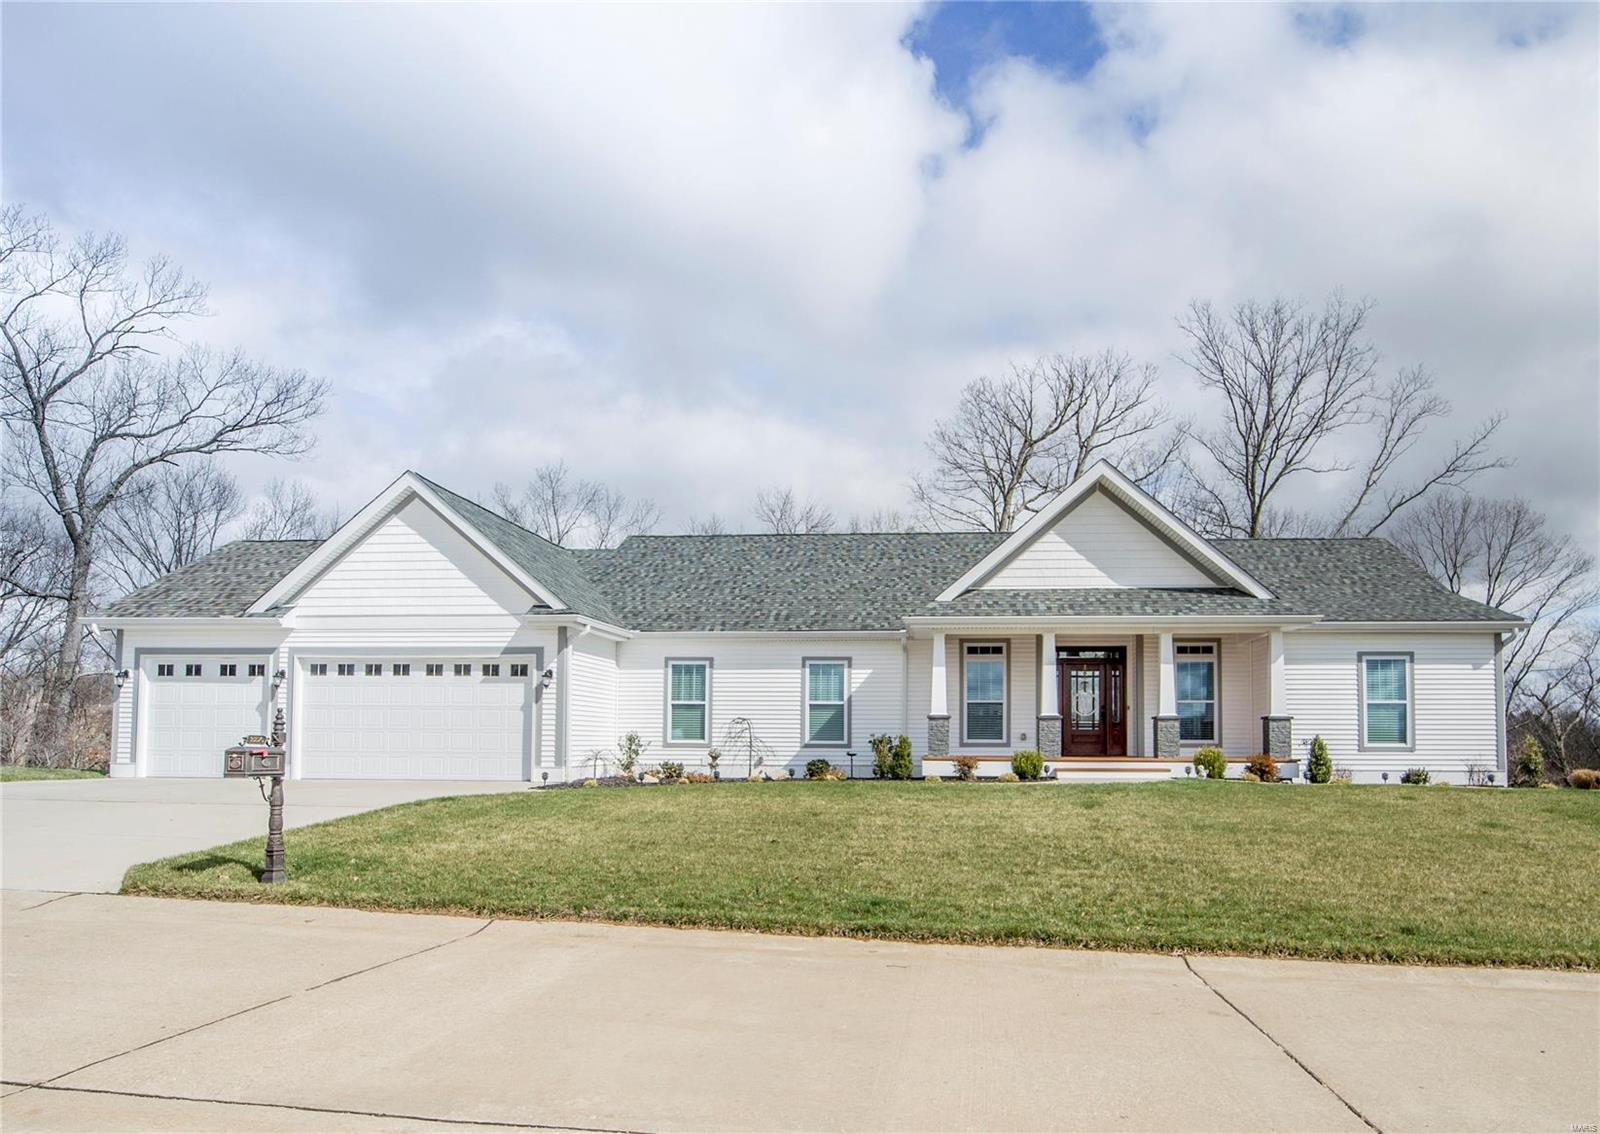 2270 Valleyview Drive Property Photo - Barnhart, MO real estate listing